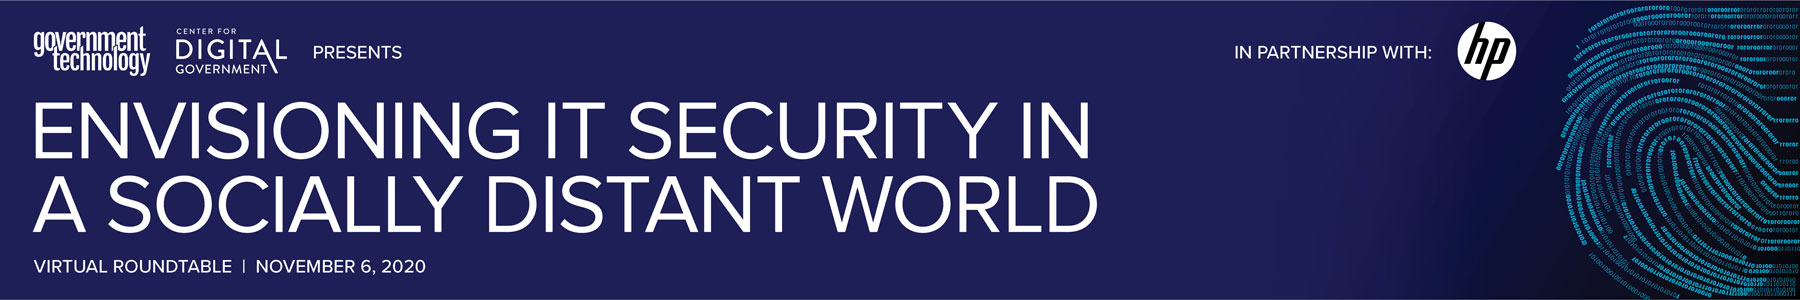 Envisioning IT Security in a Socially Distant World